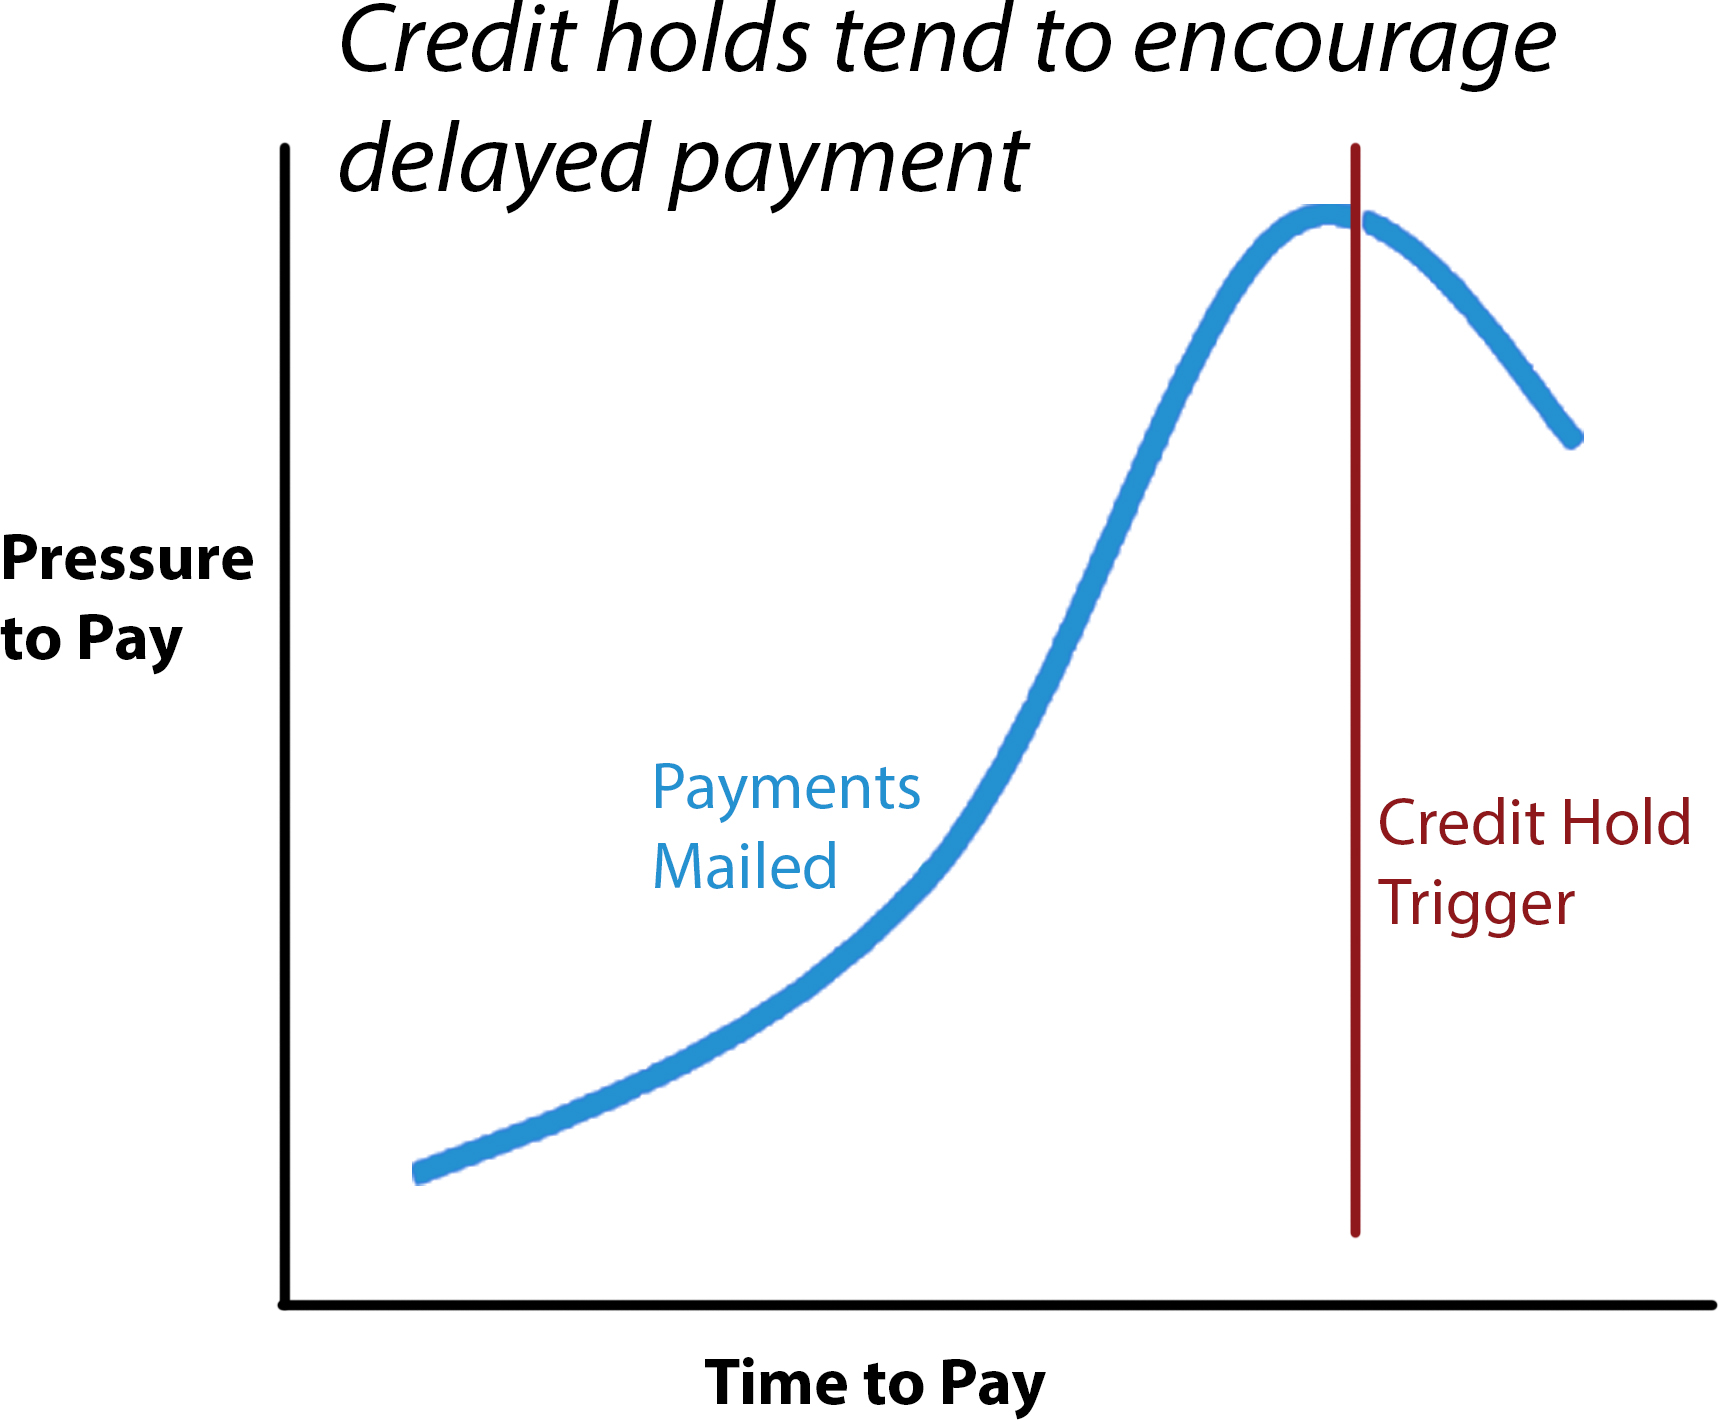 Credit Holds